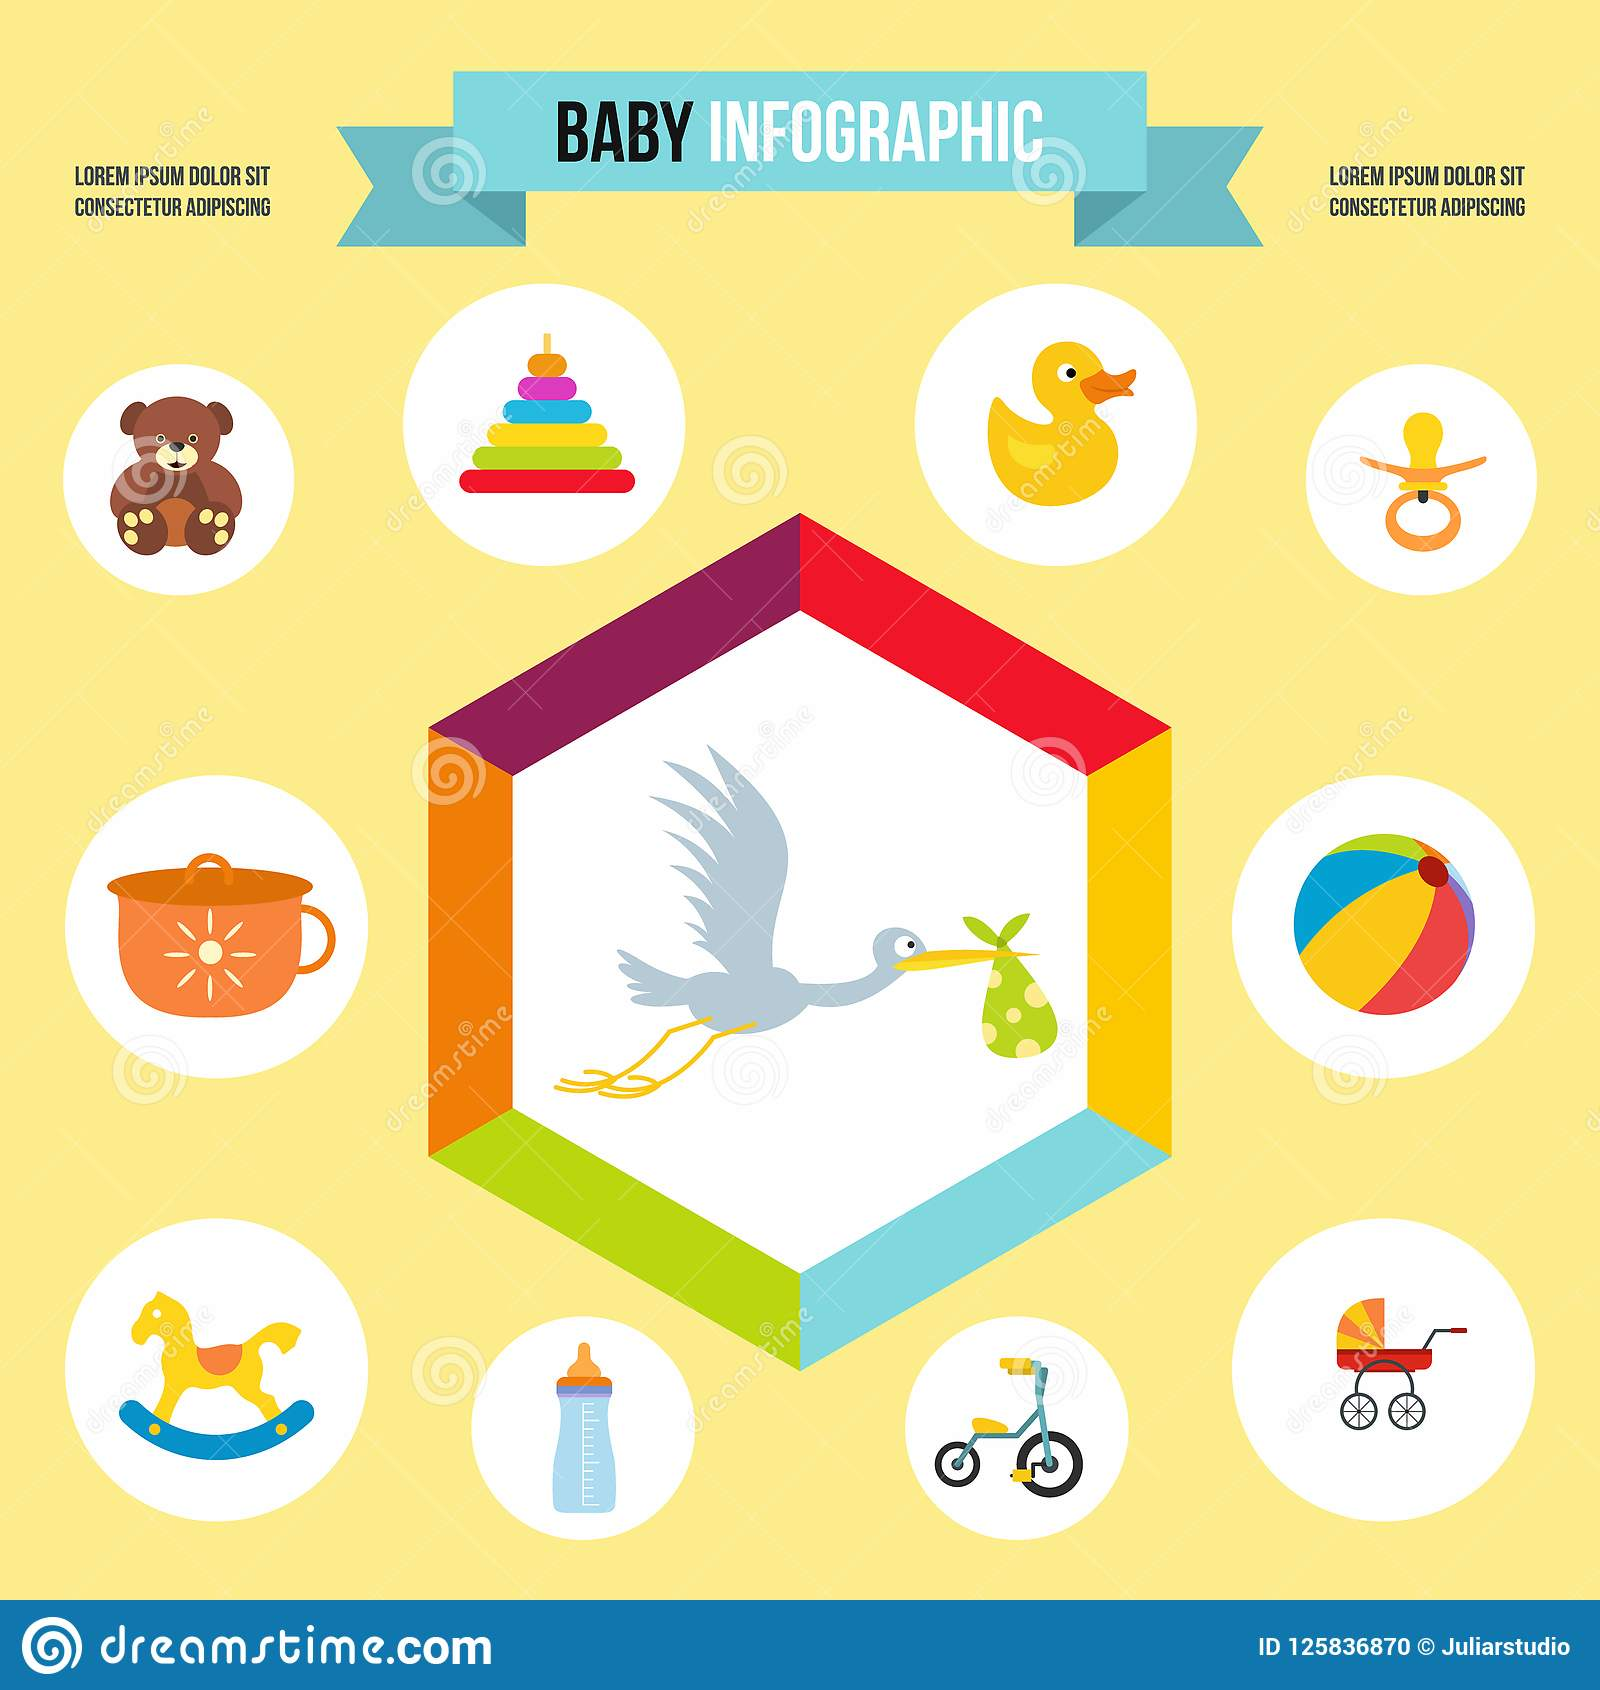 Baby Infographic Birthday Template